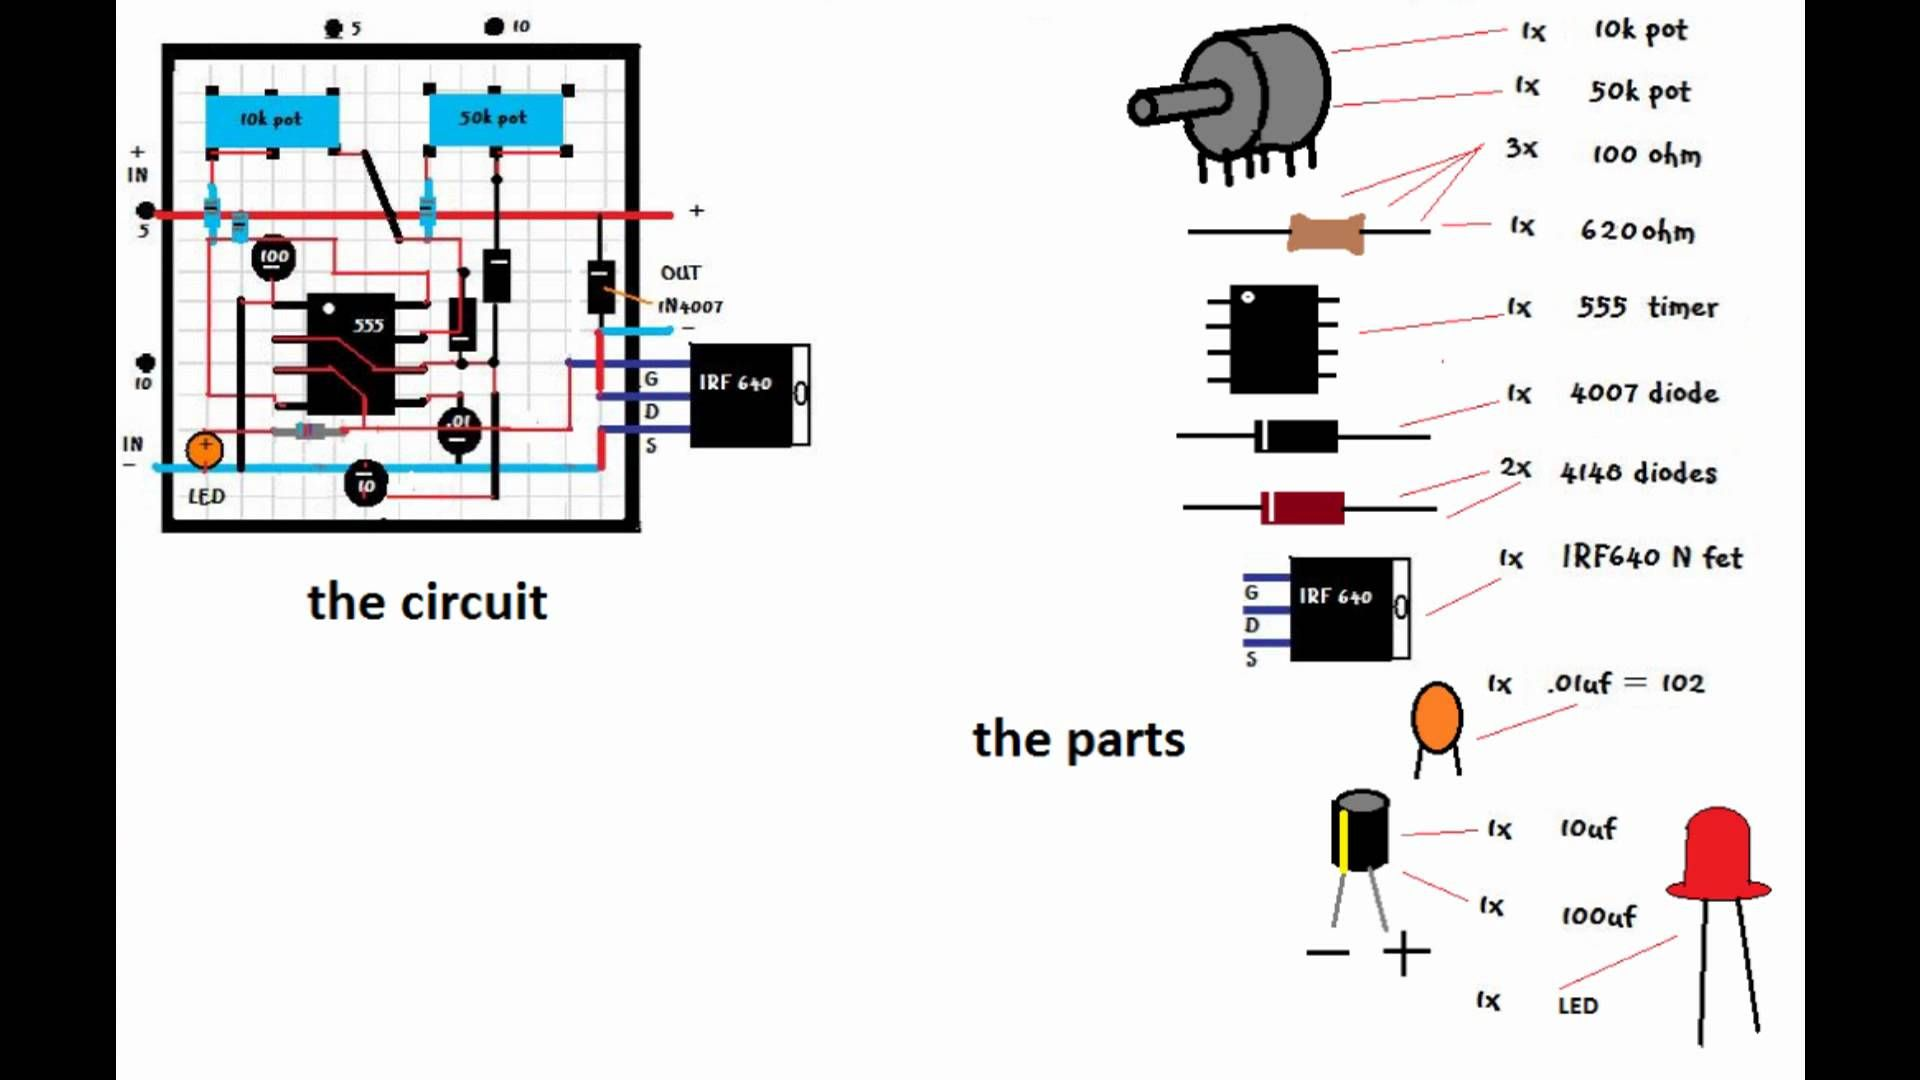 How To Make A Buck Converter Circuit Hho Free Energy Pinterest Circuitlab Op Amp Mixer Engineering Technology